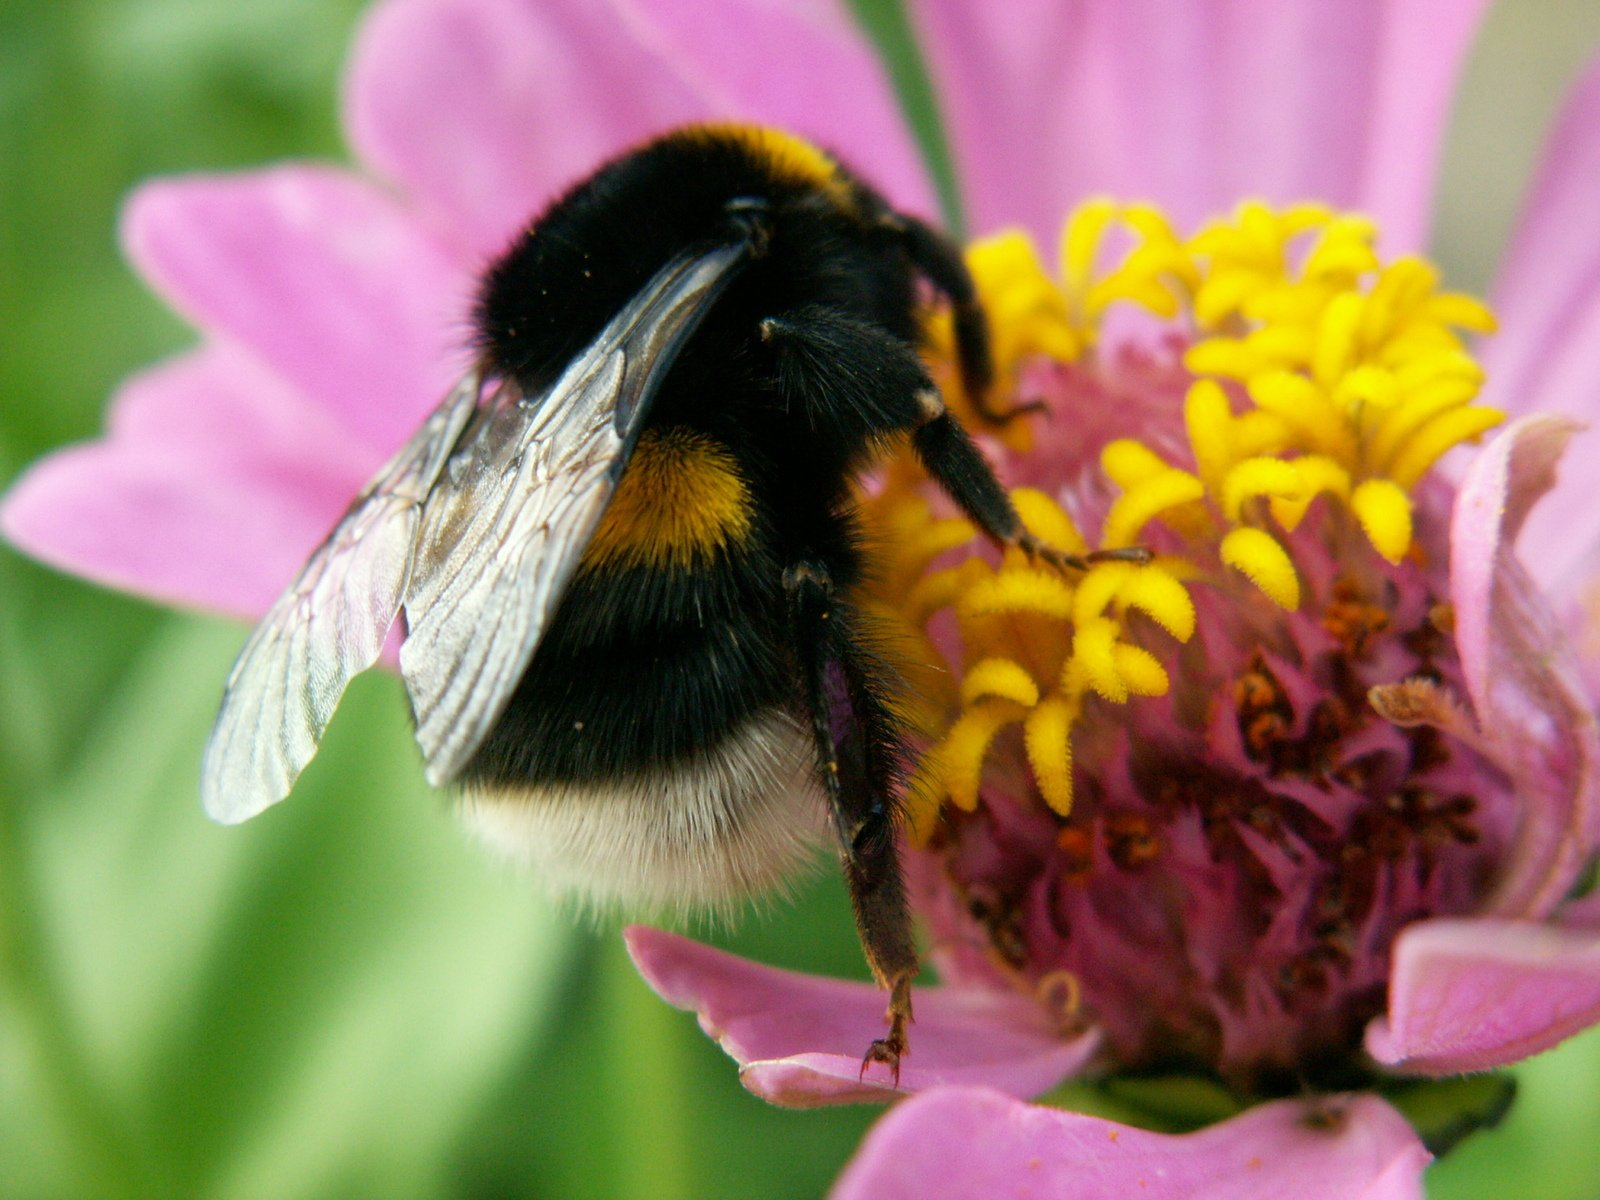 bees pollinate different plants